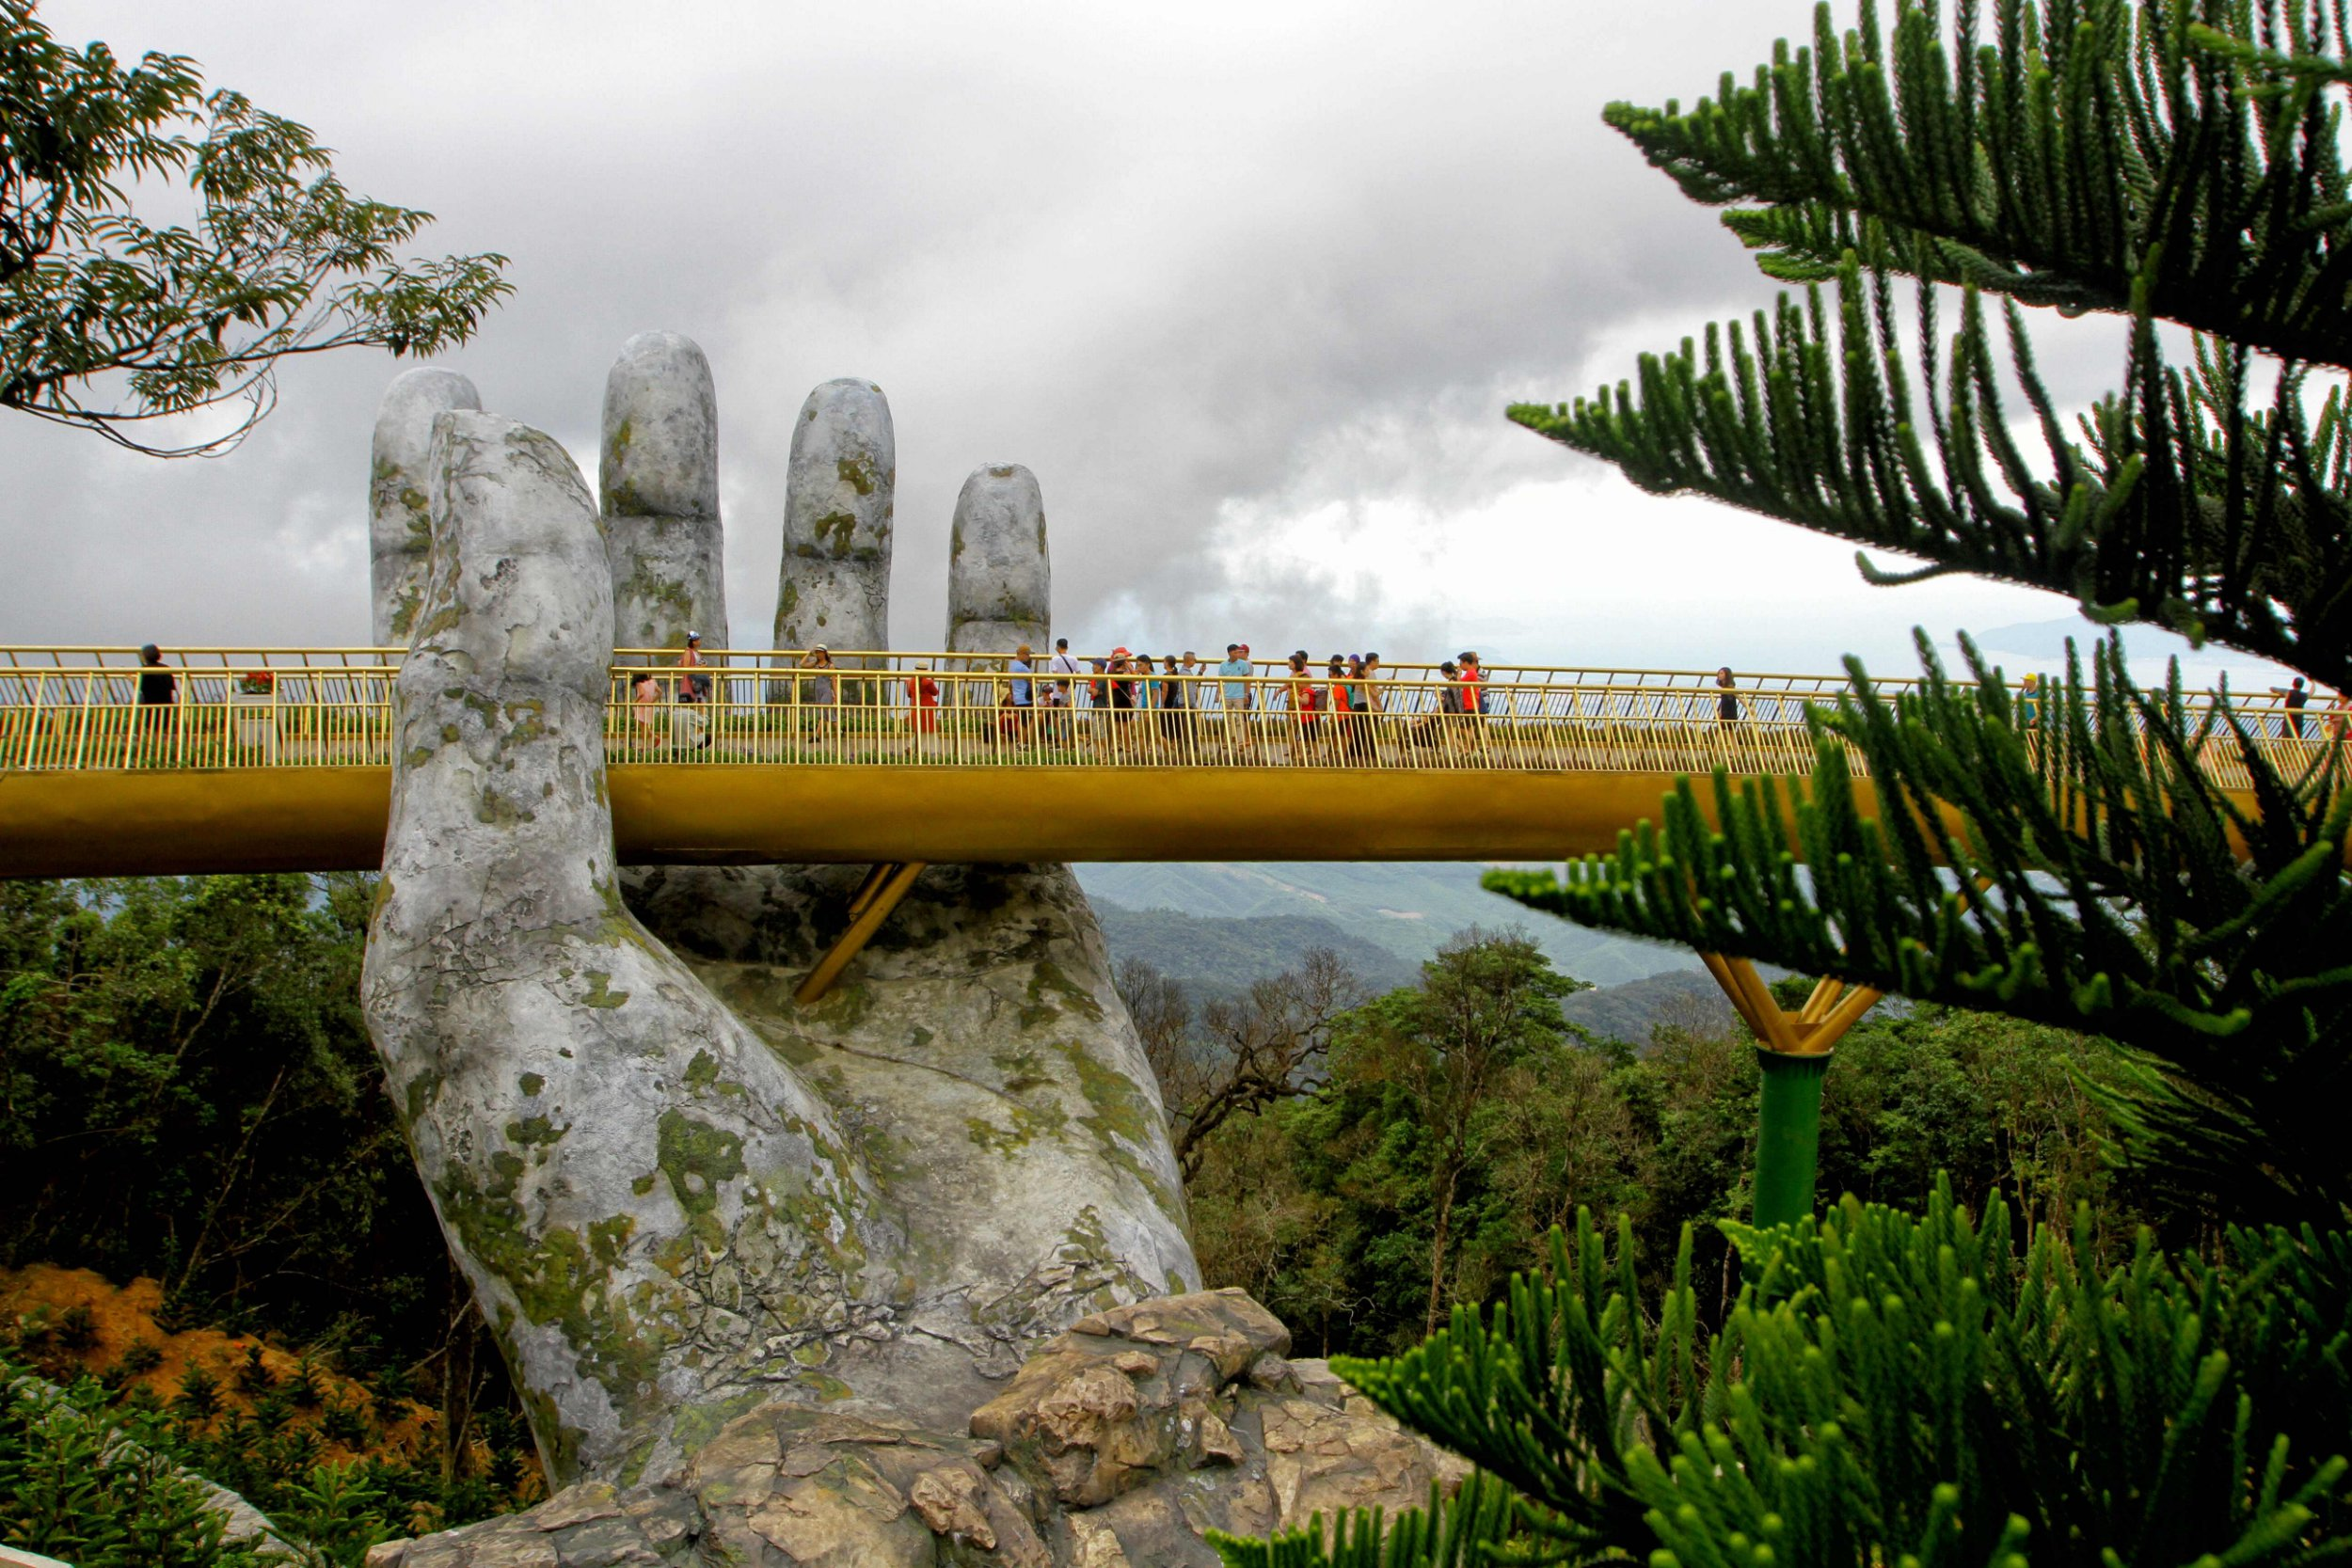 """In this photograph taken on July 31, 2018, visitors walk along the 150-meter long Cau Vang """"Golden Bridge"""" in the Ba Na Hills near Danang. Nestled in the forested hills of central Vietnam two giant concrete hands emerge from the trees, holding up a glimmering golden bridge crowded with gleeful visitors taking selfies at the country's latest eccentric tourist draw. / AFP PHOTO / Linh PHAMLINH PHAM/AFP/Getty Images"""